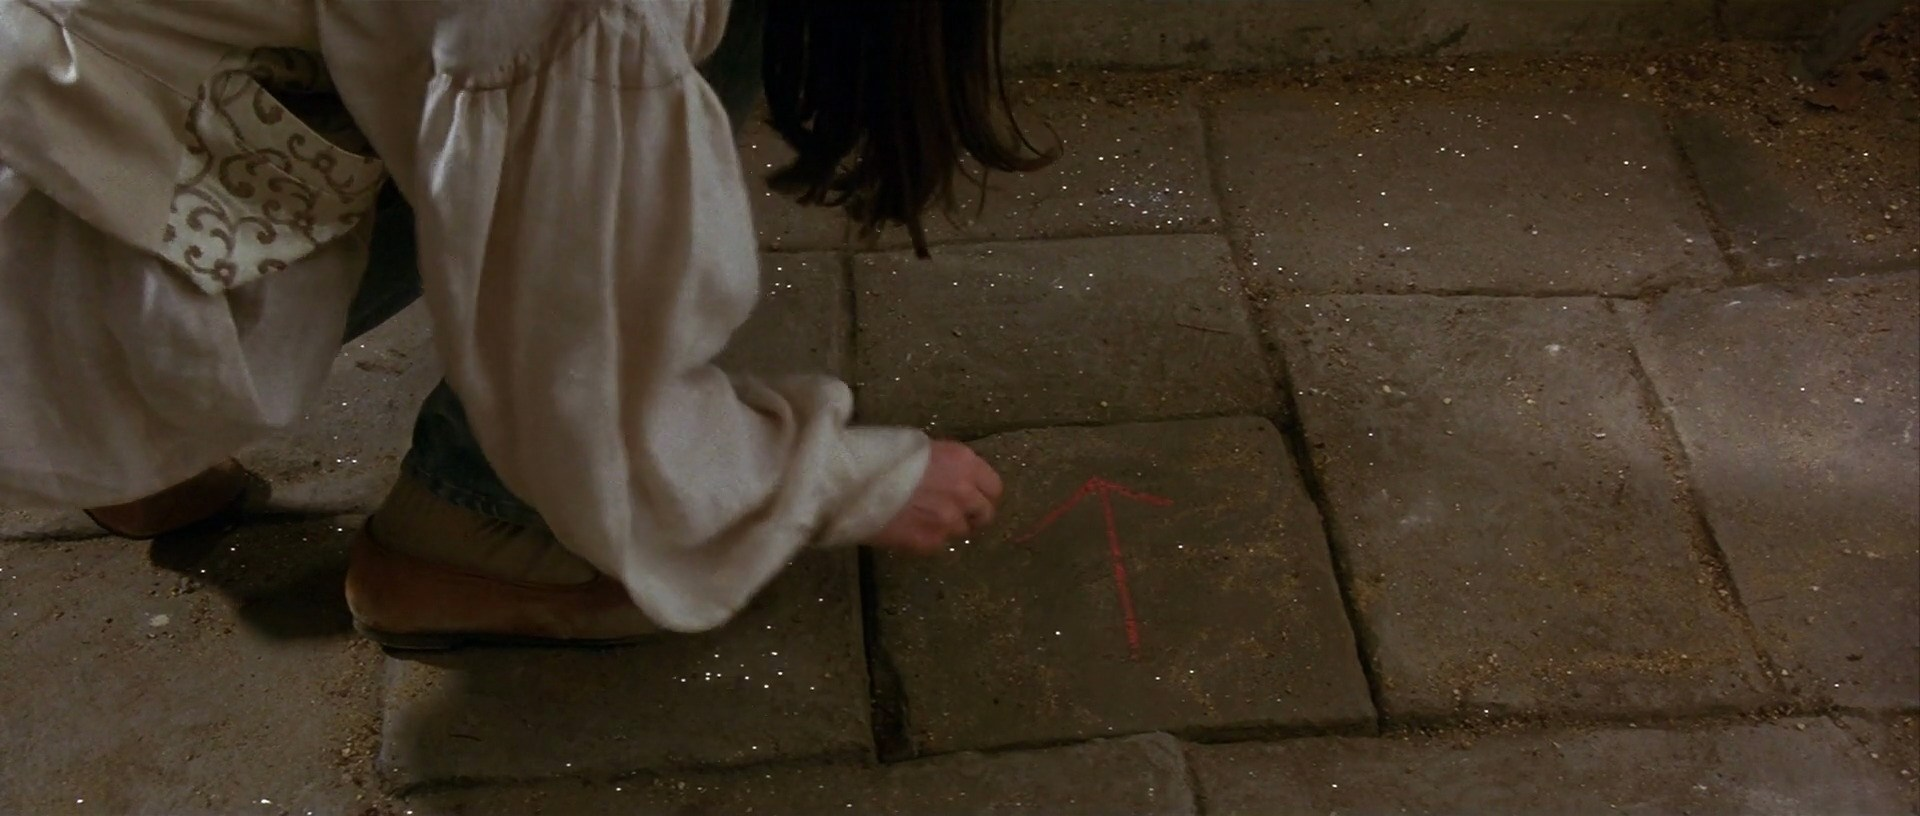 labyrinth-movie-screencaps.com-2604.jpg